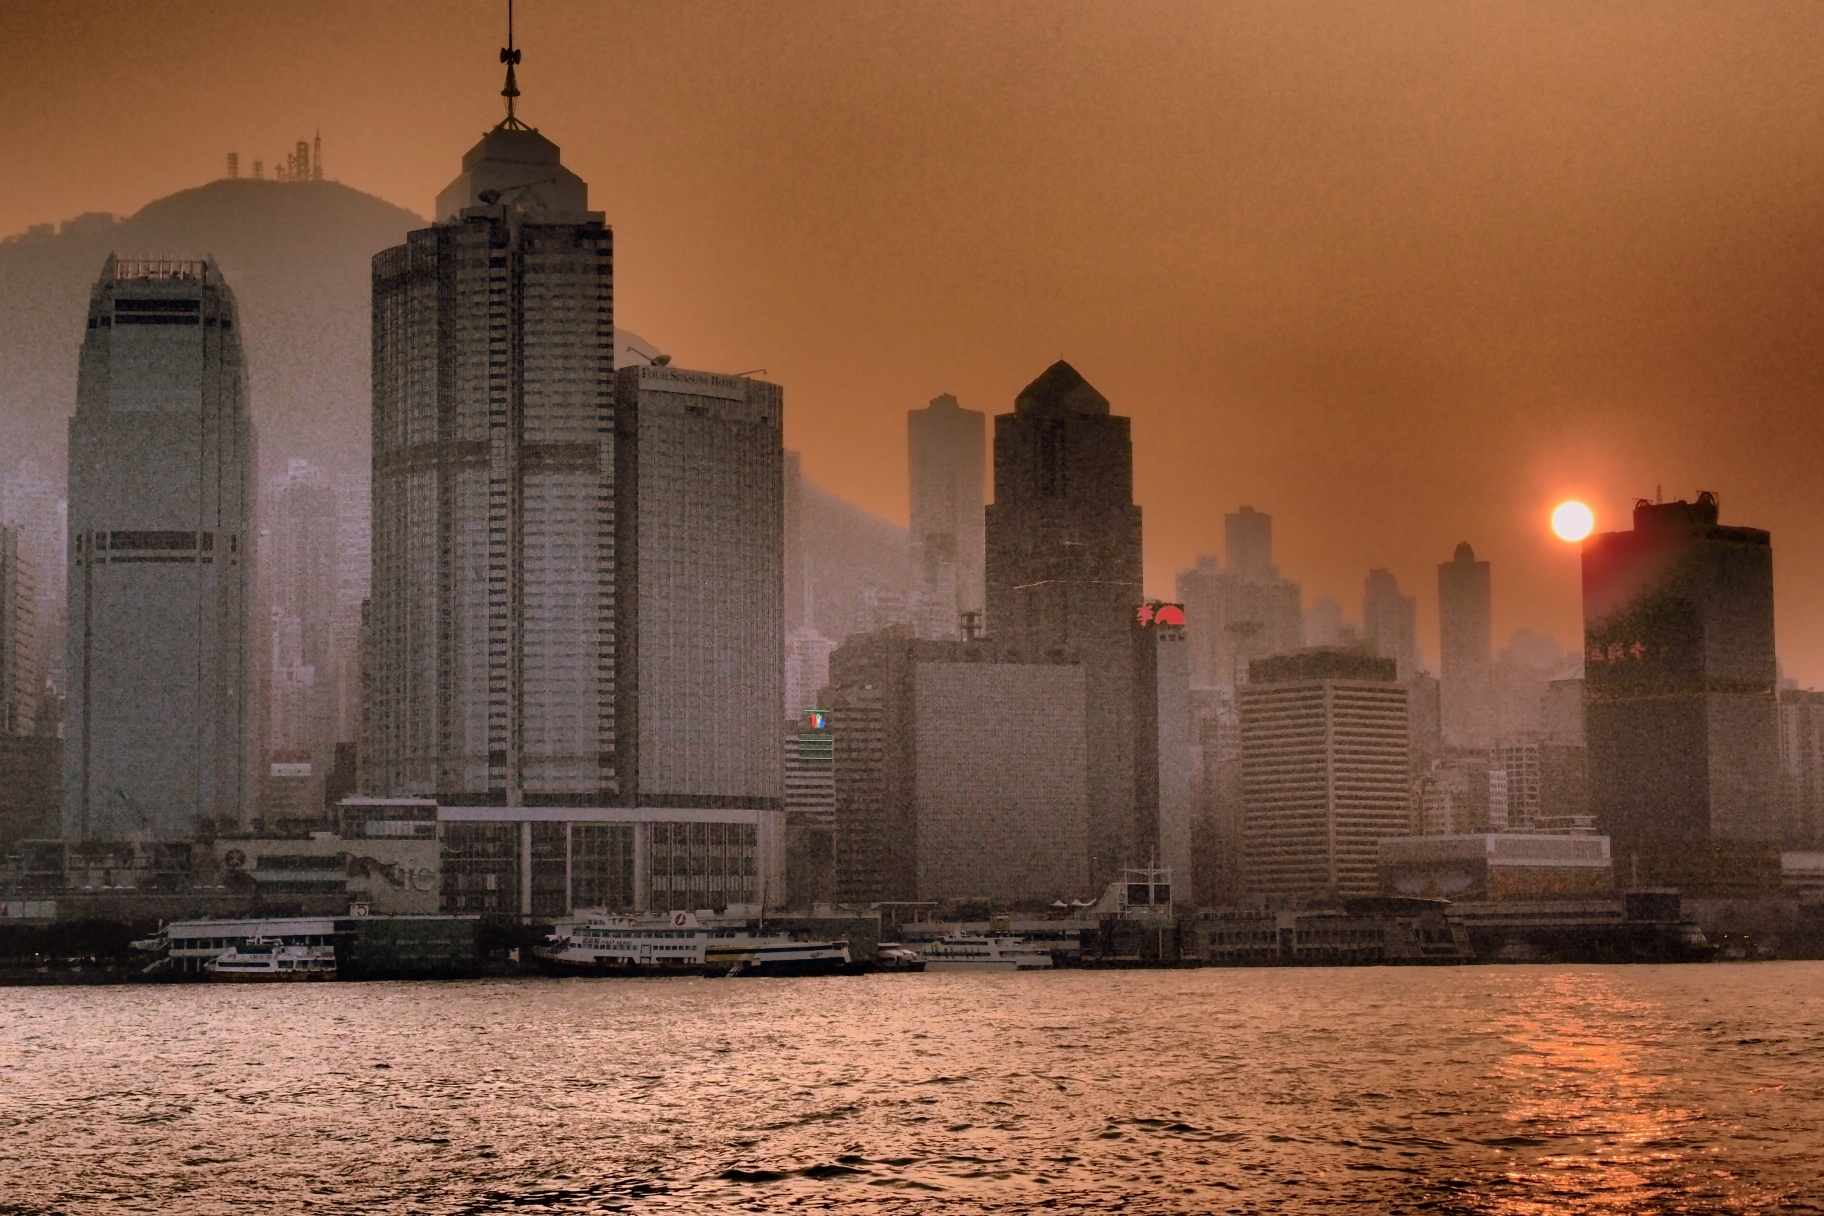 A hazy, foggy, polluted winter sunset in Hong Kong